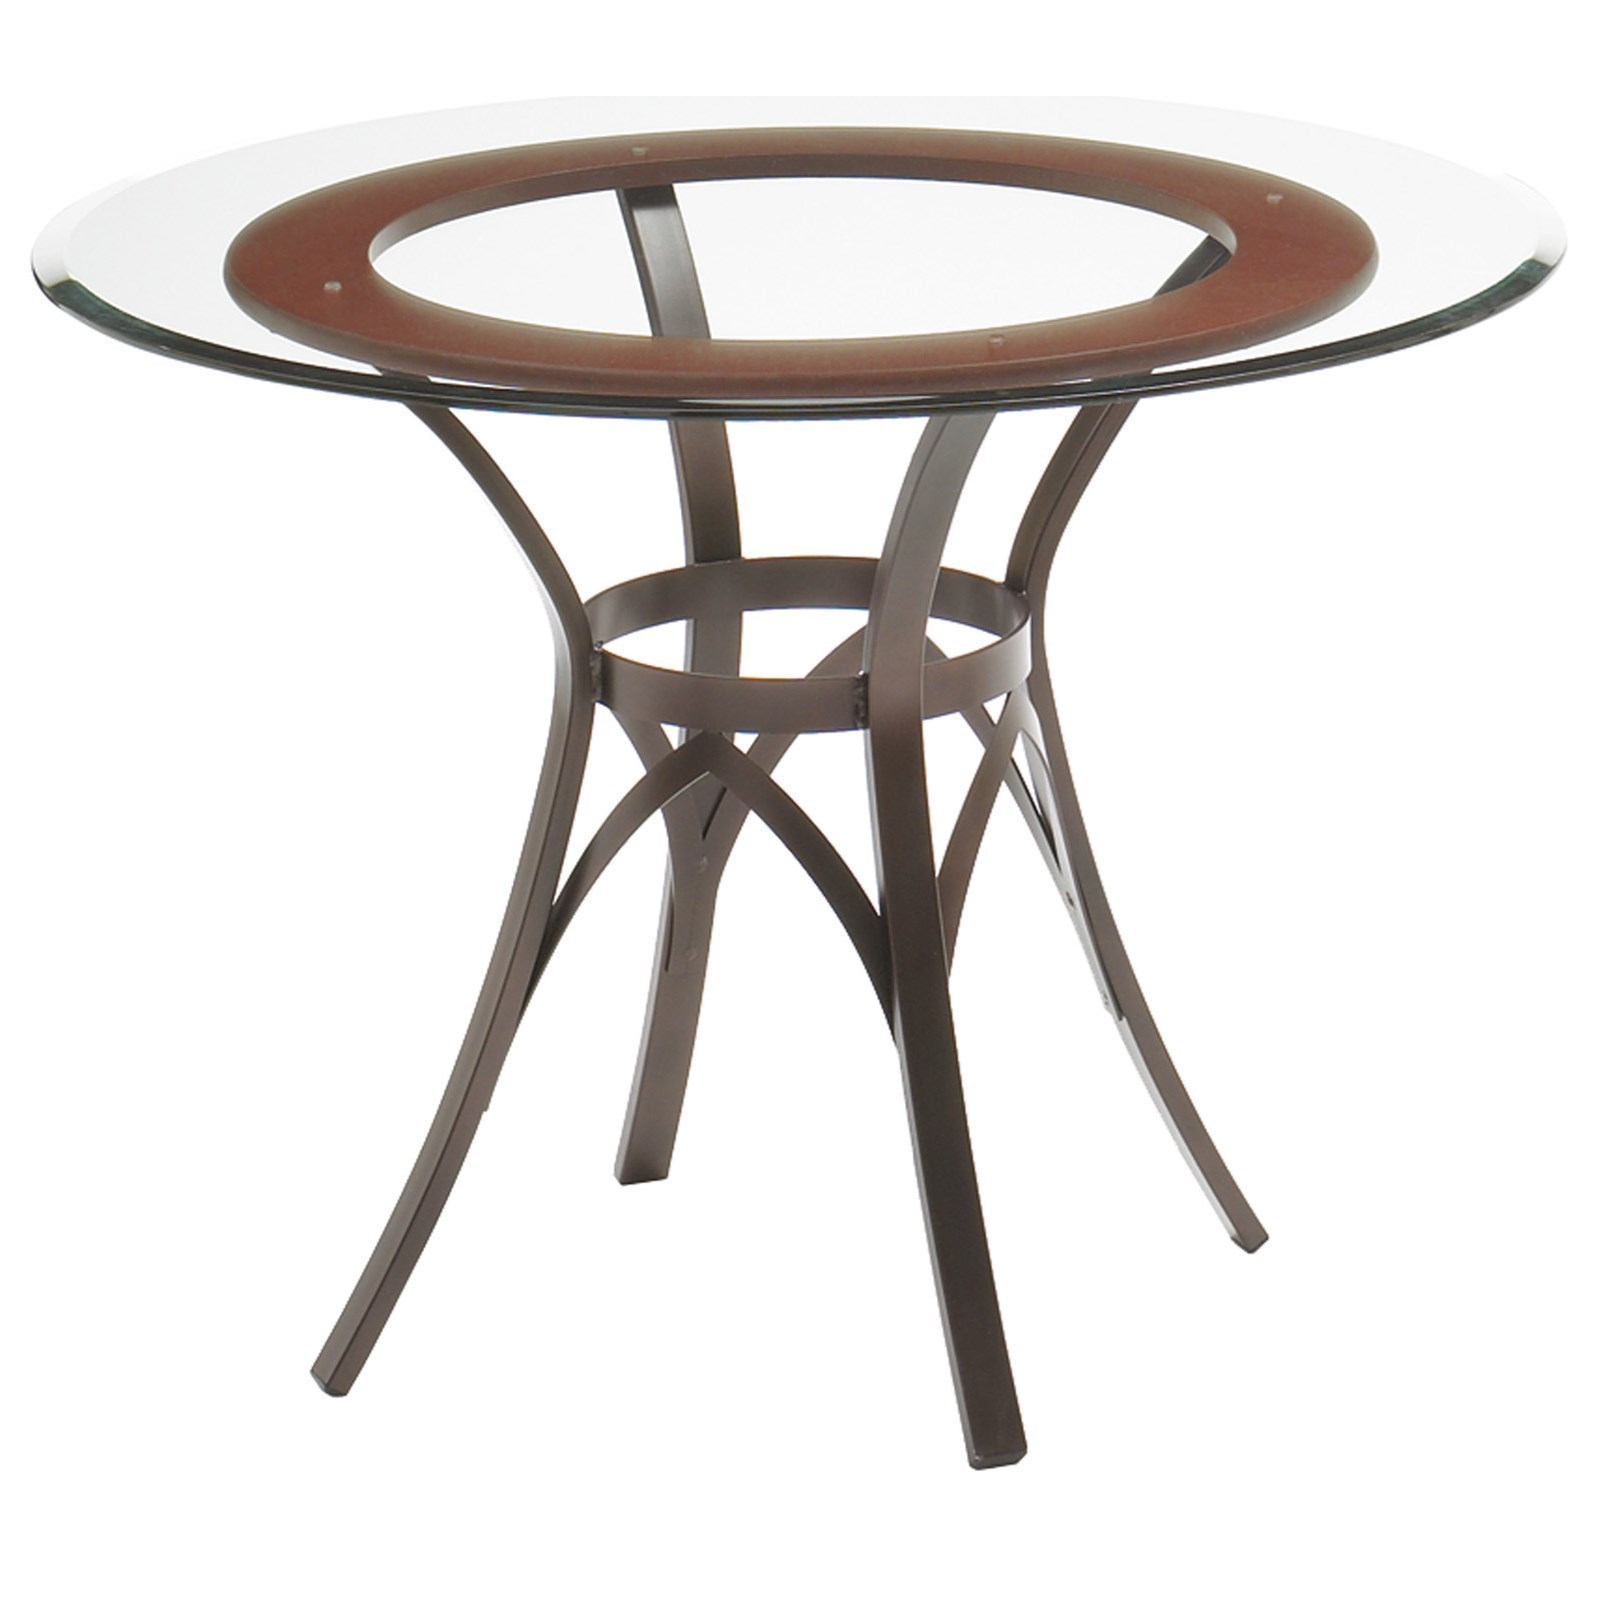 Customizable Kai Table w/ Wood Ring Insert and Glass Top